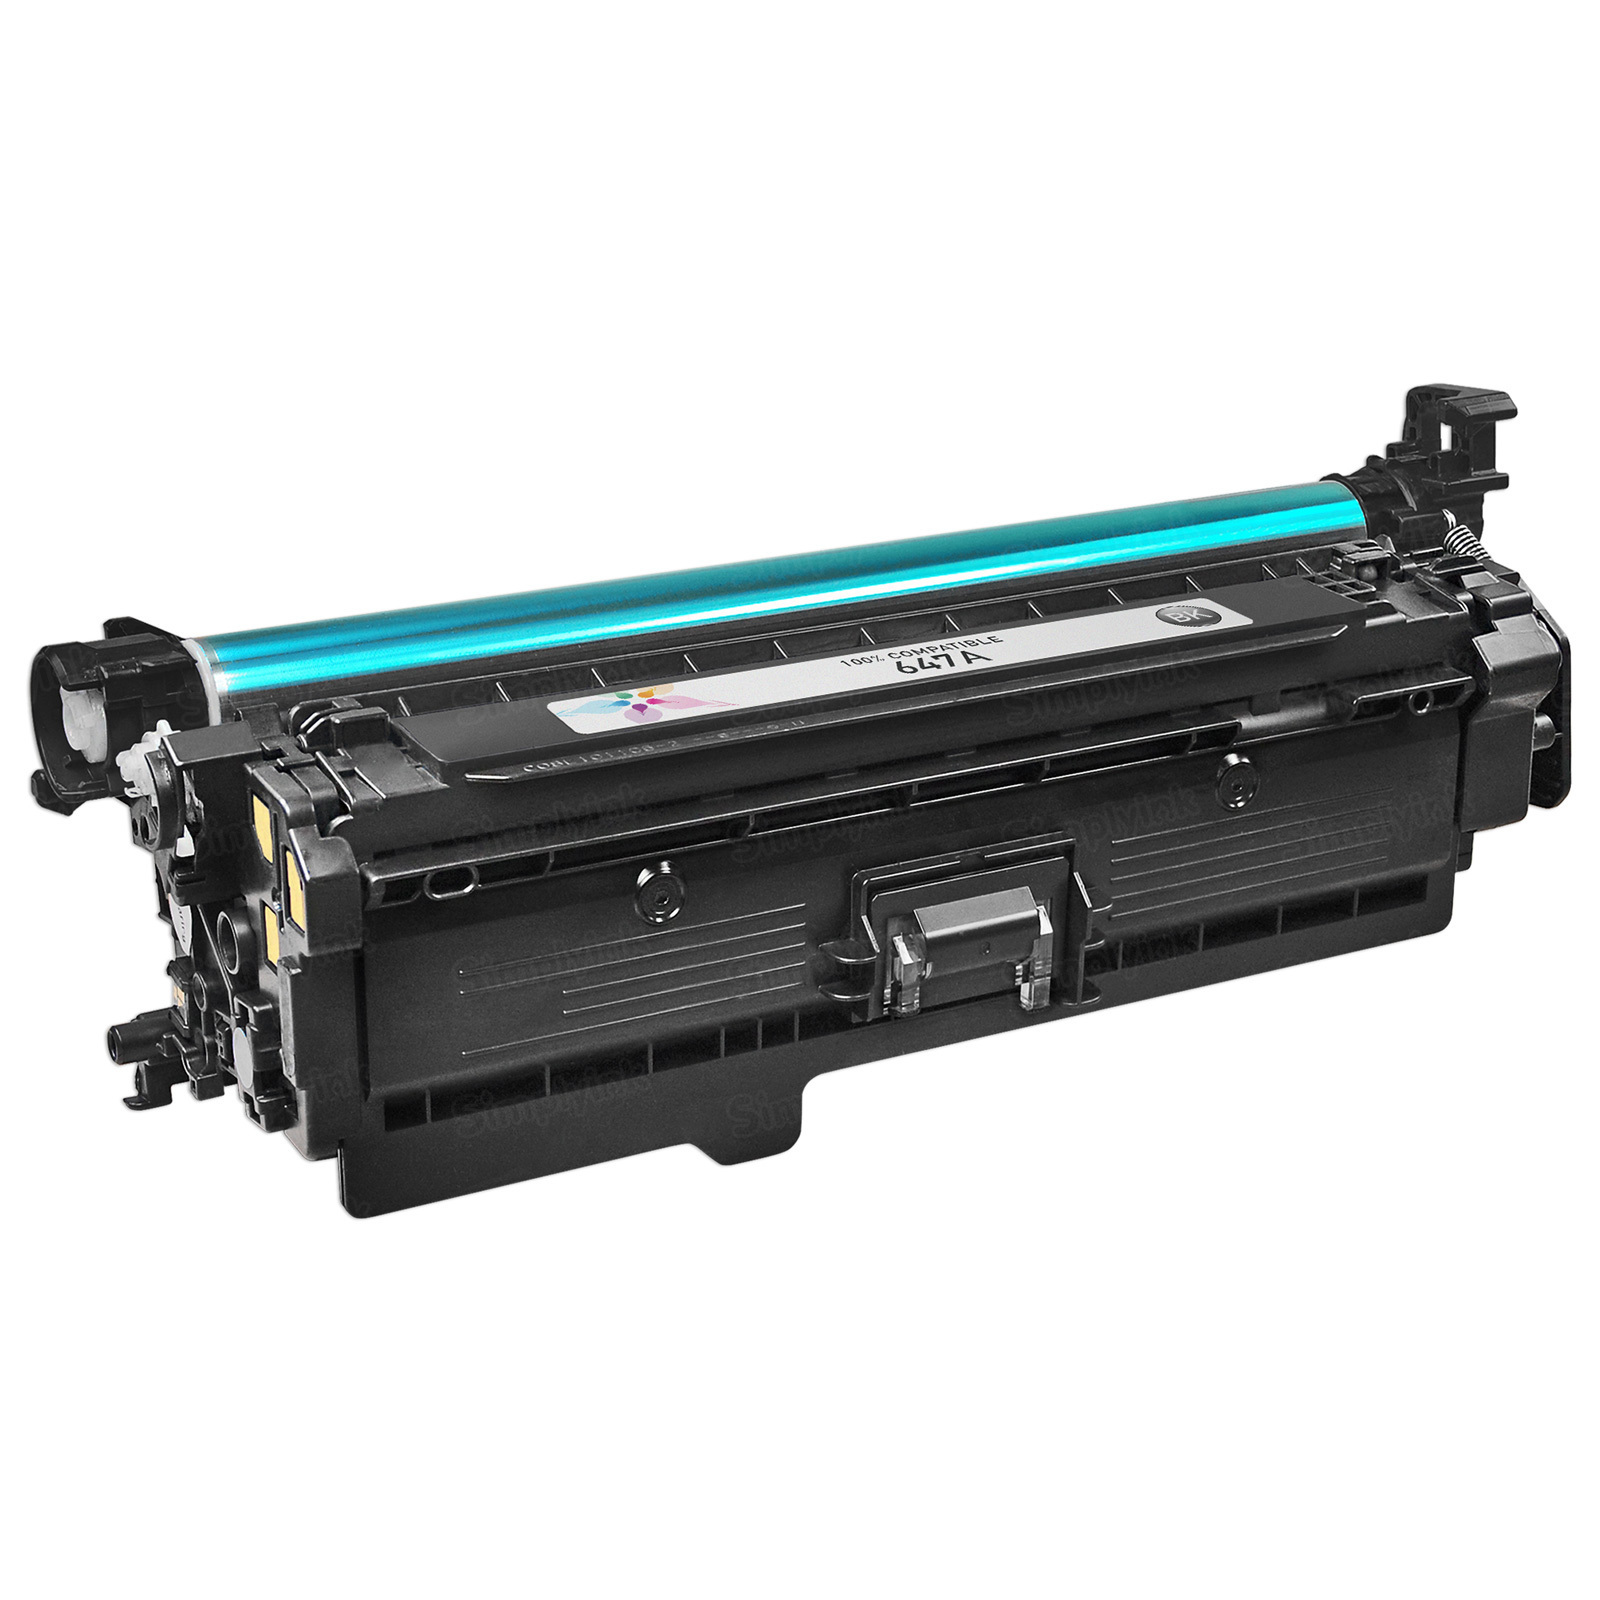 Remanufactured Replacement Black Laser Toner for HP 647A